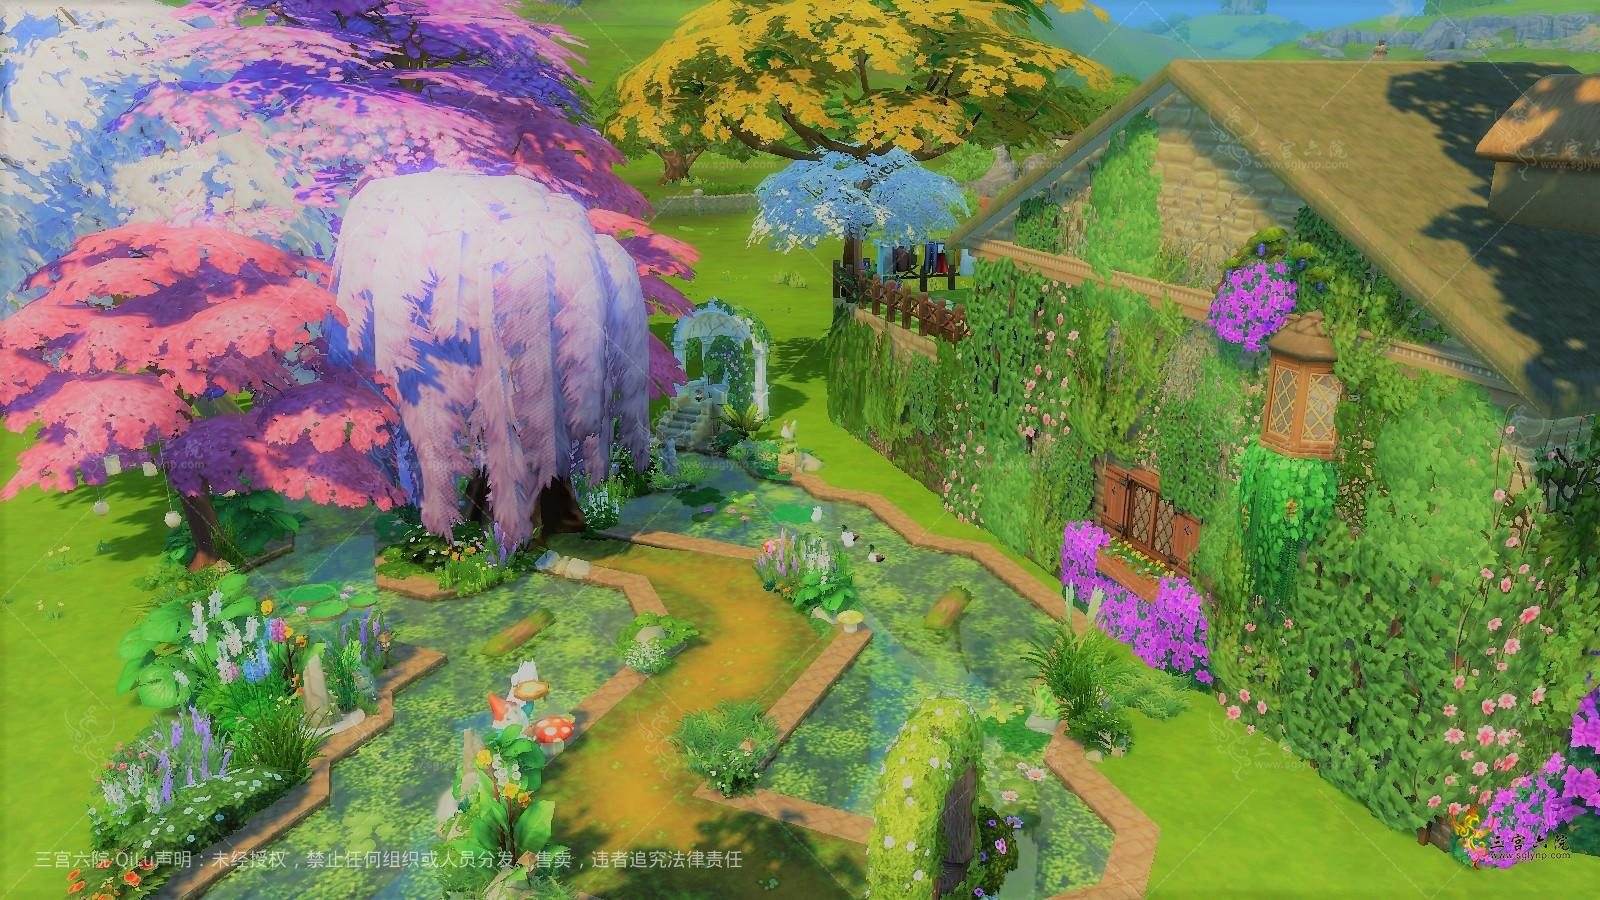 The Sims 4 2021_8_21 17_10_57.png